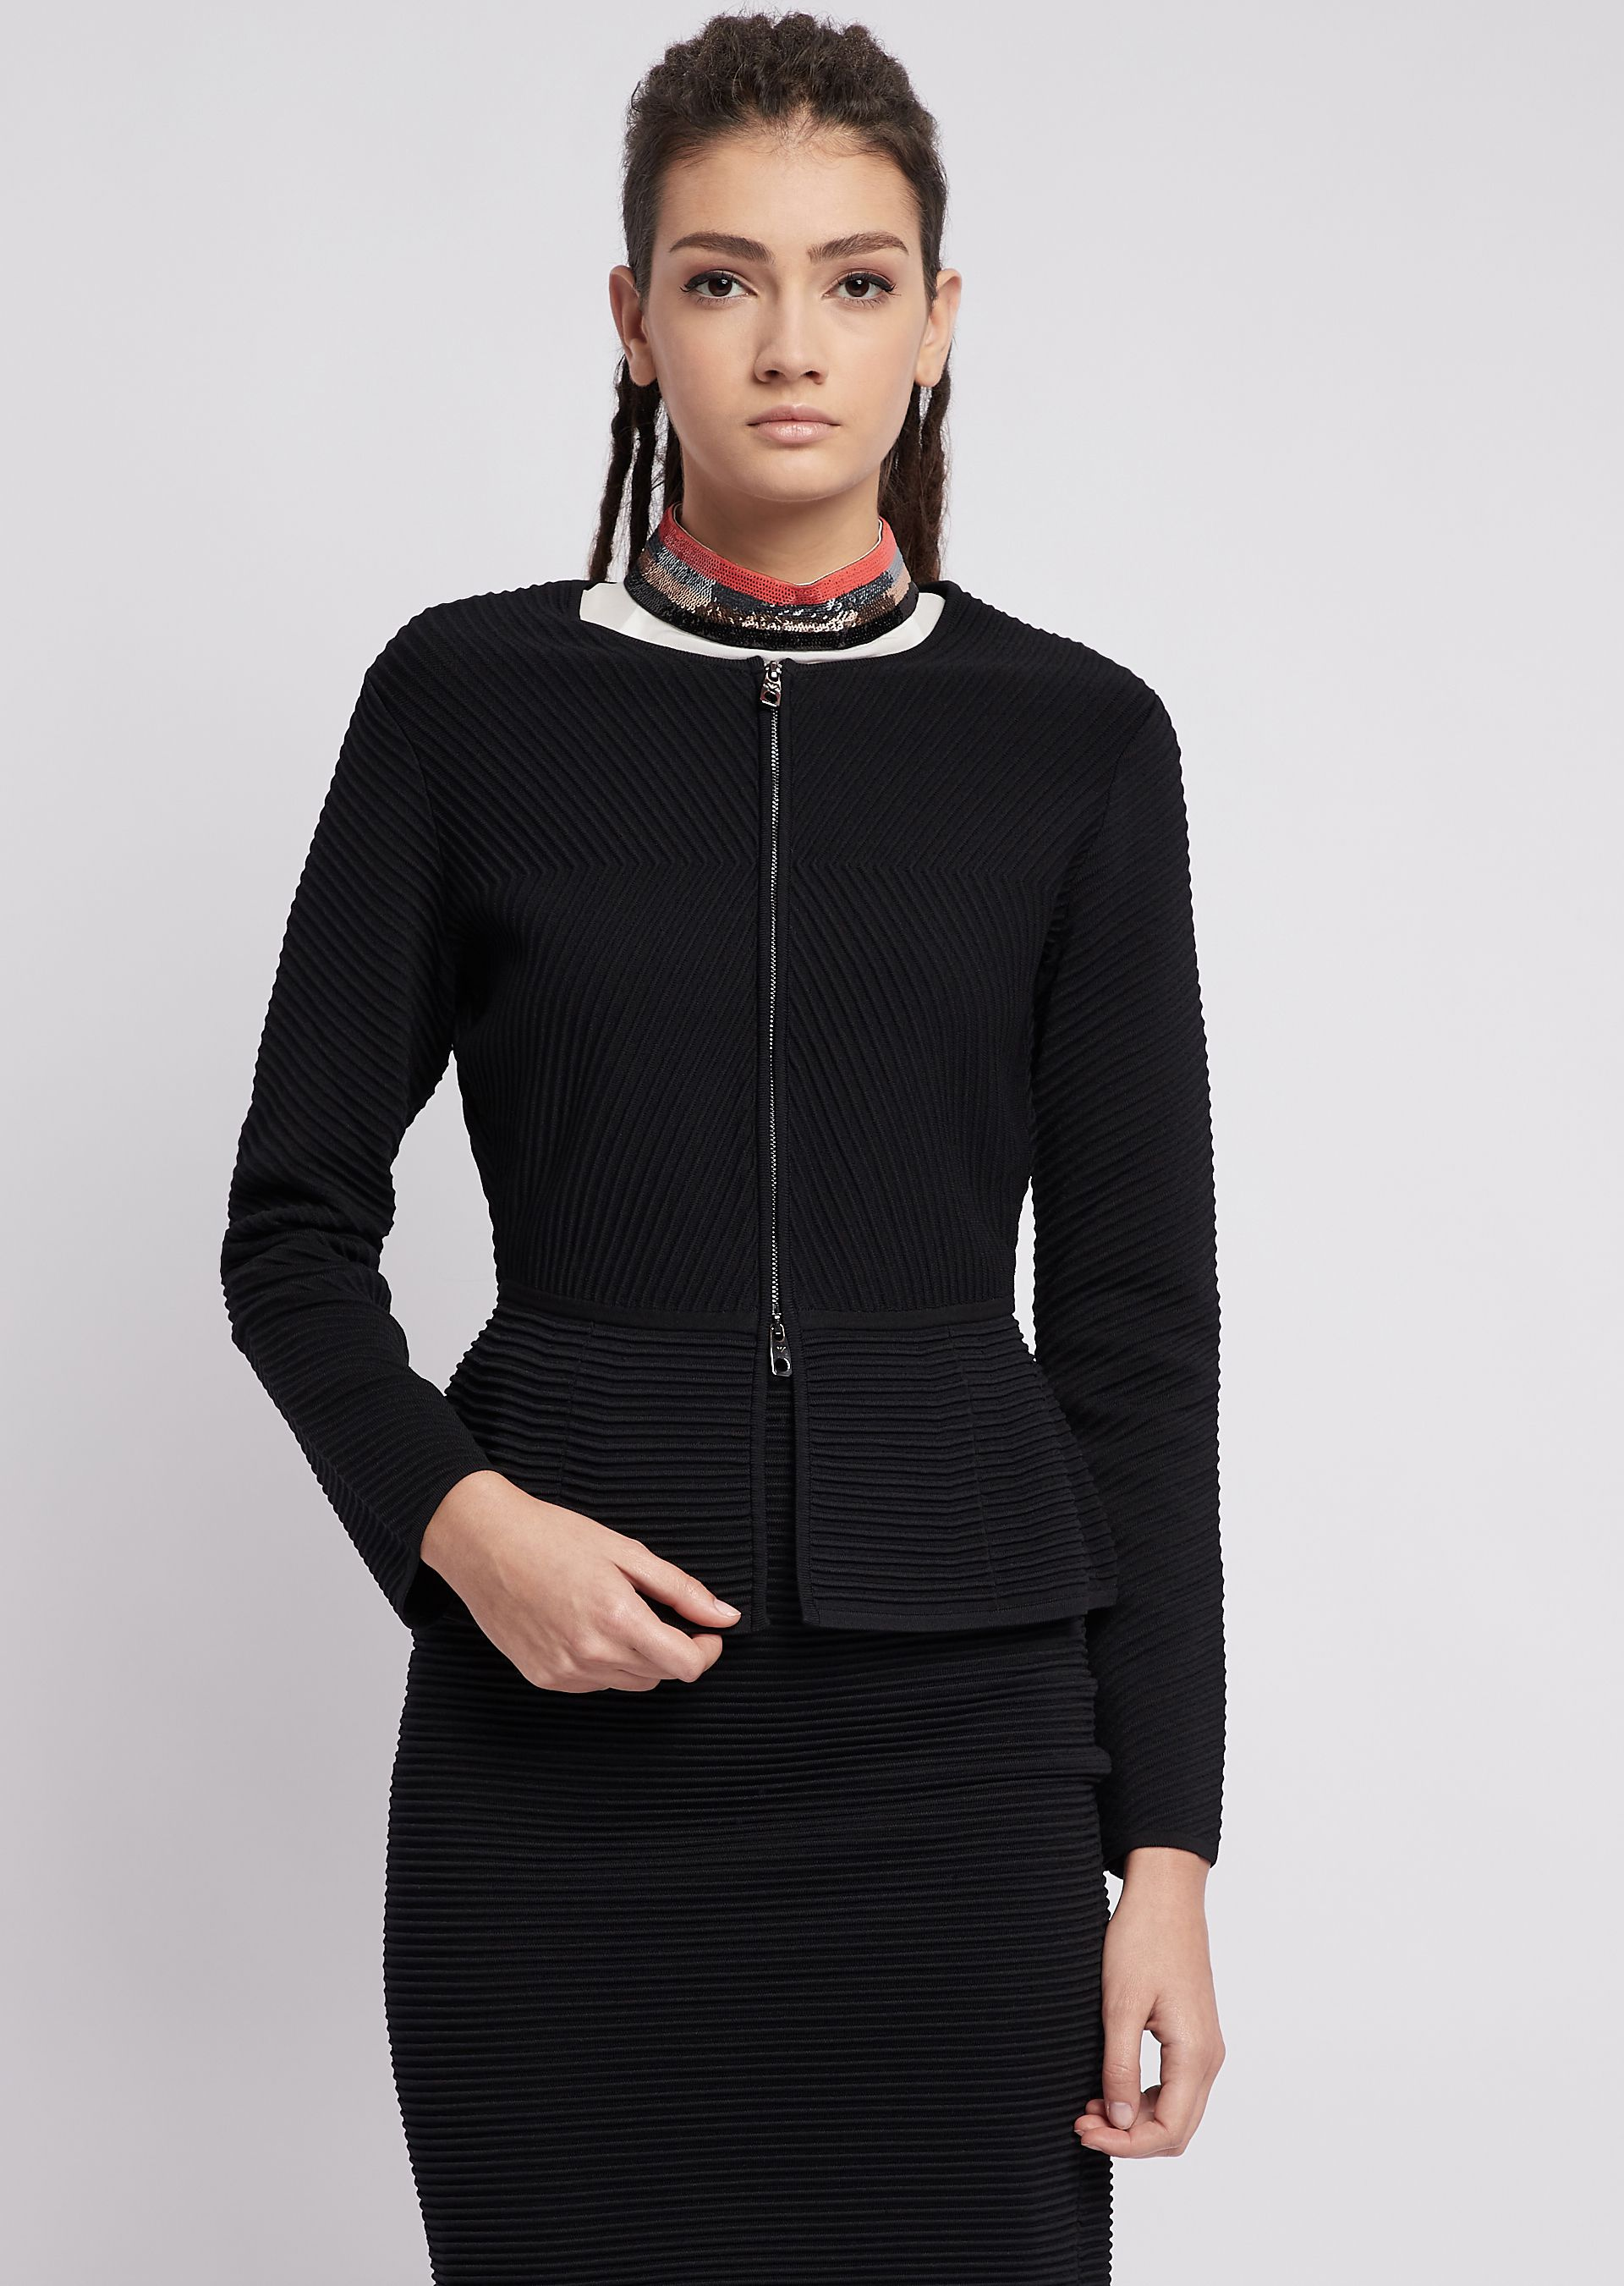 Formal Jackets - Item 41869508 in Black from ARMANI.COM